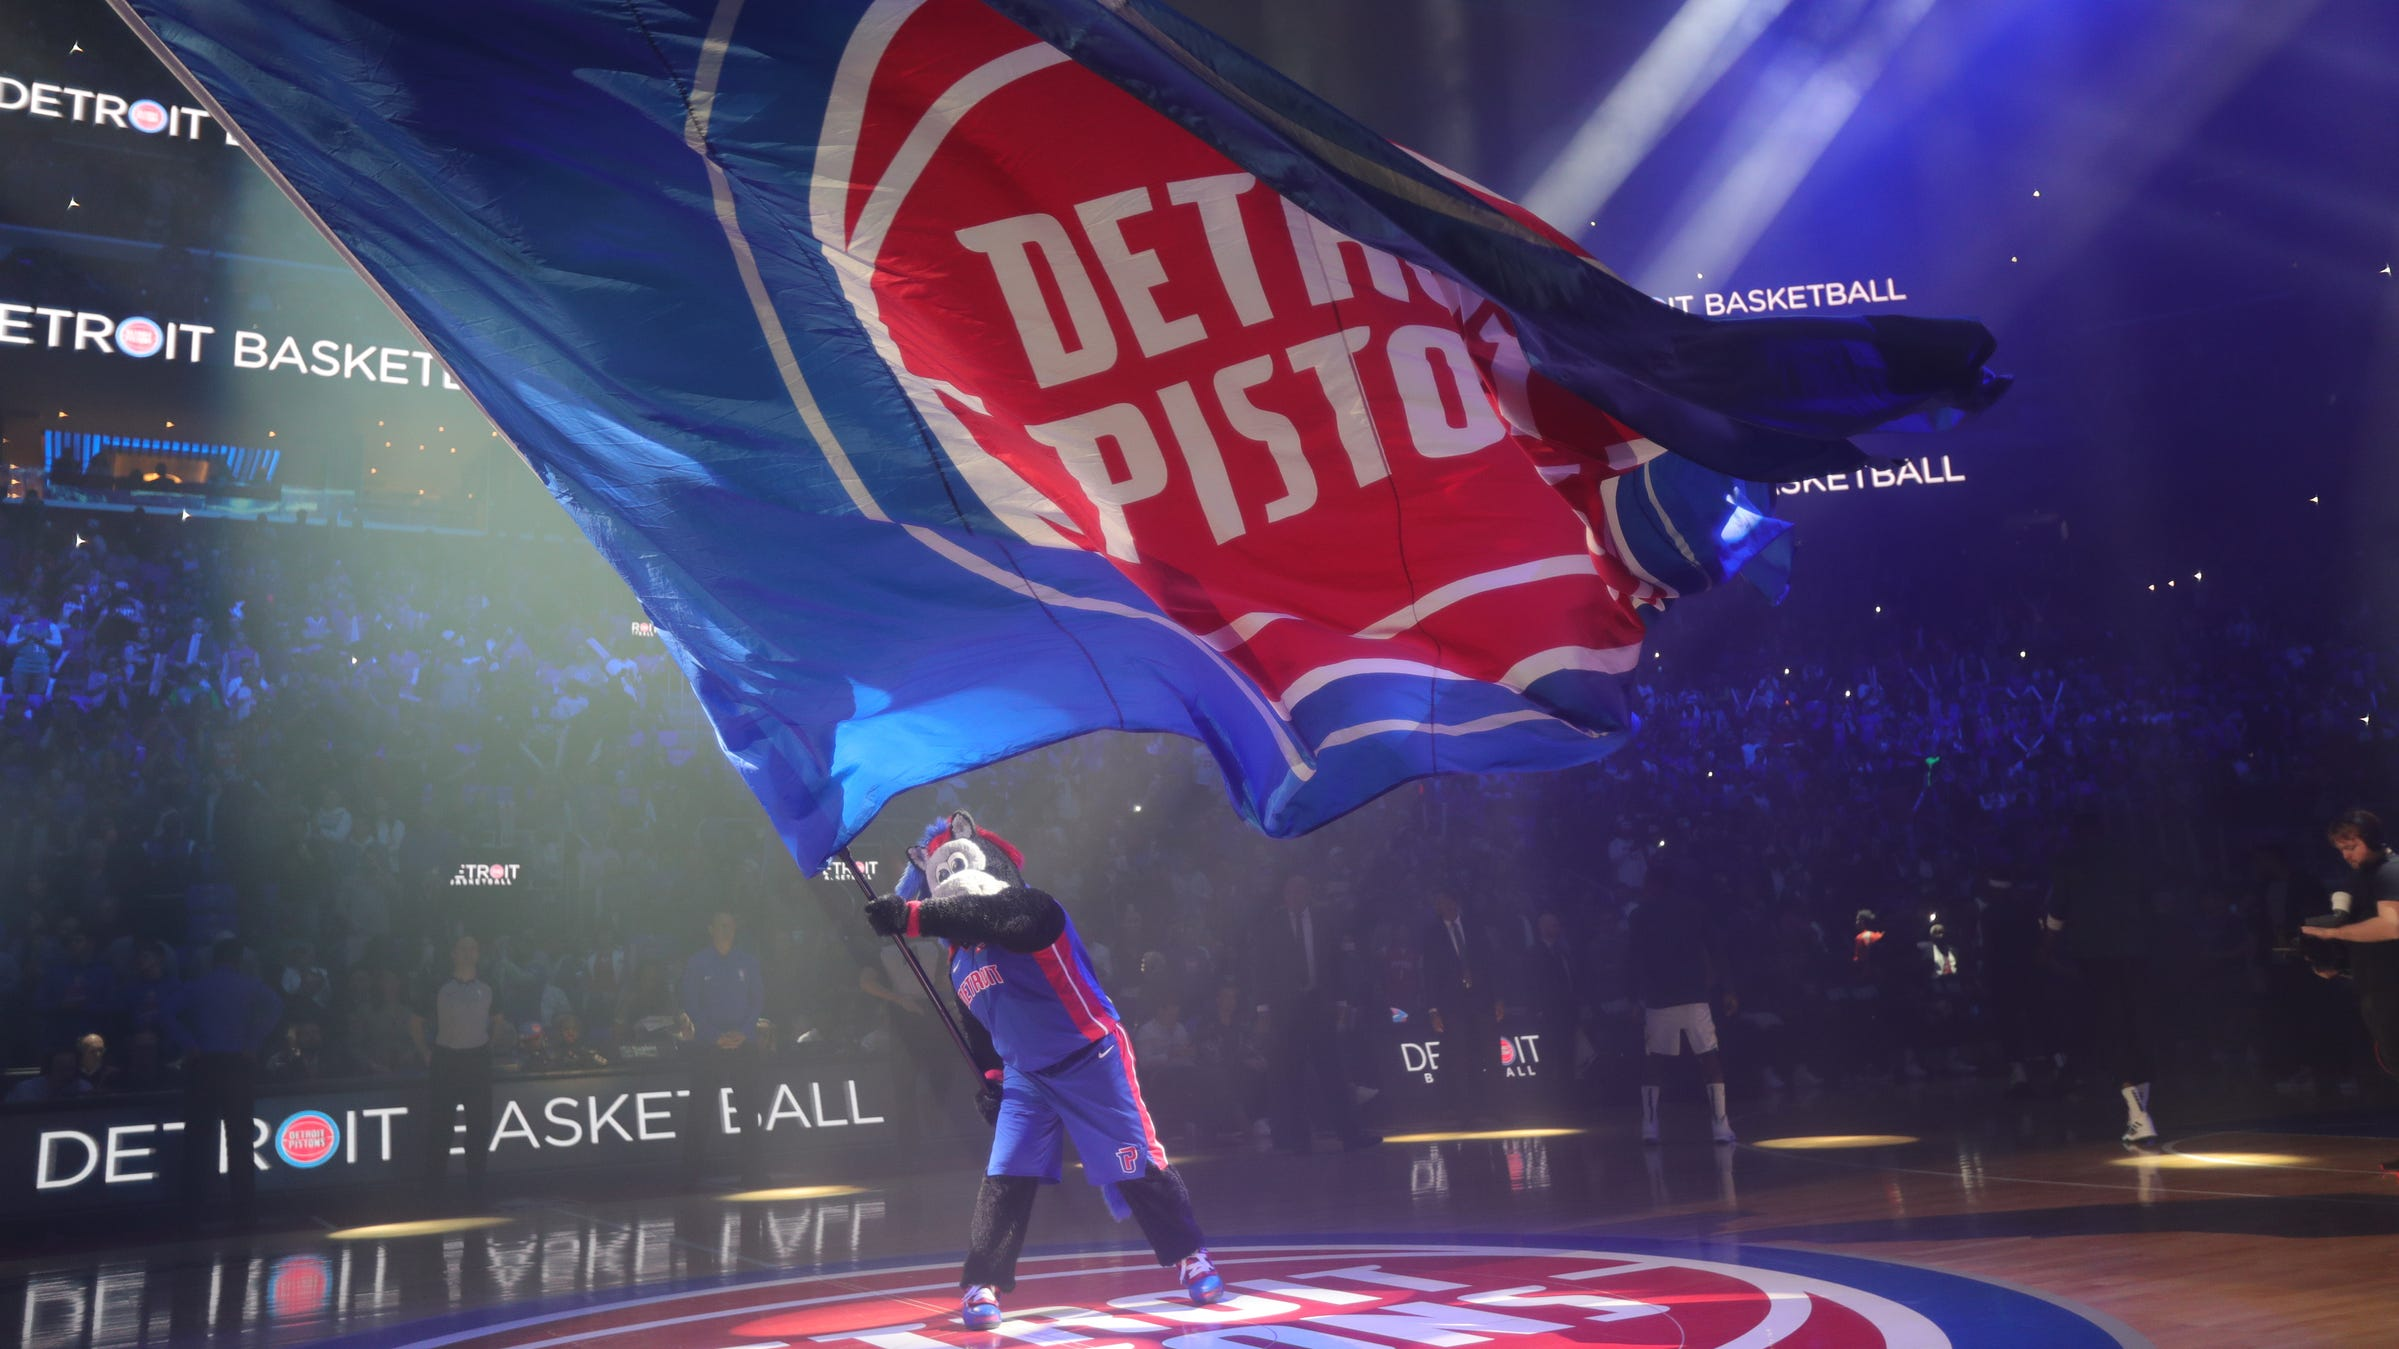 Pistons enter partnership with betting firms FanDuel, DraftKings